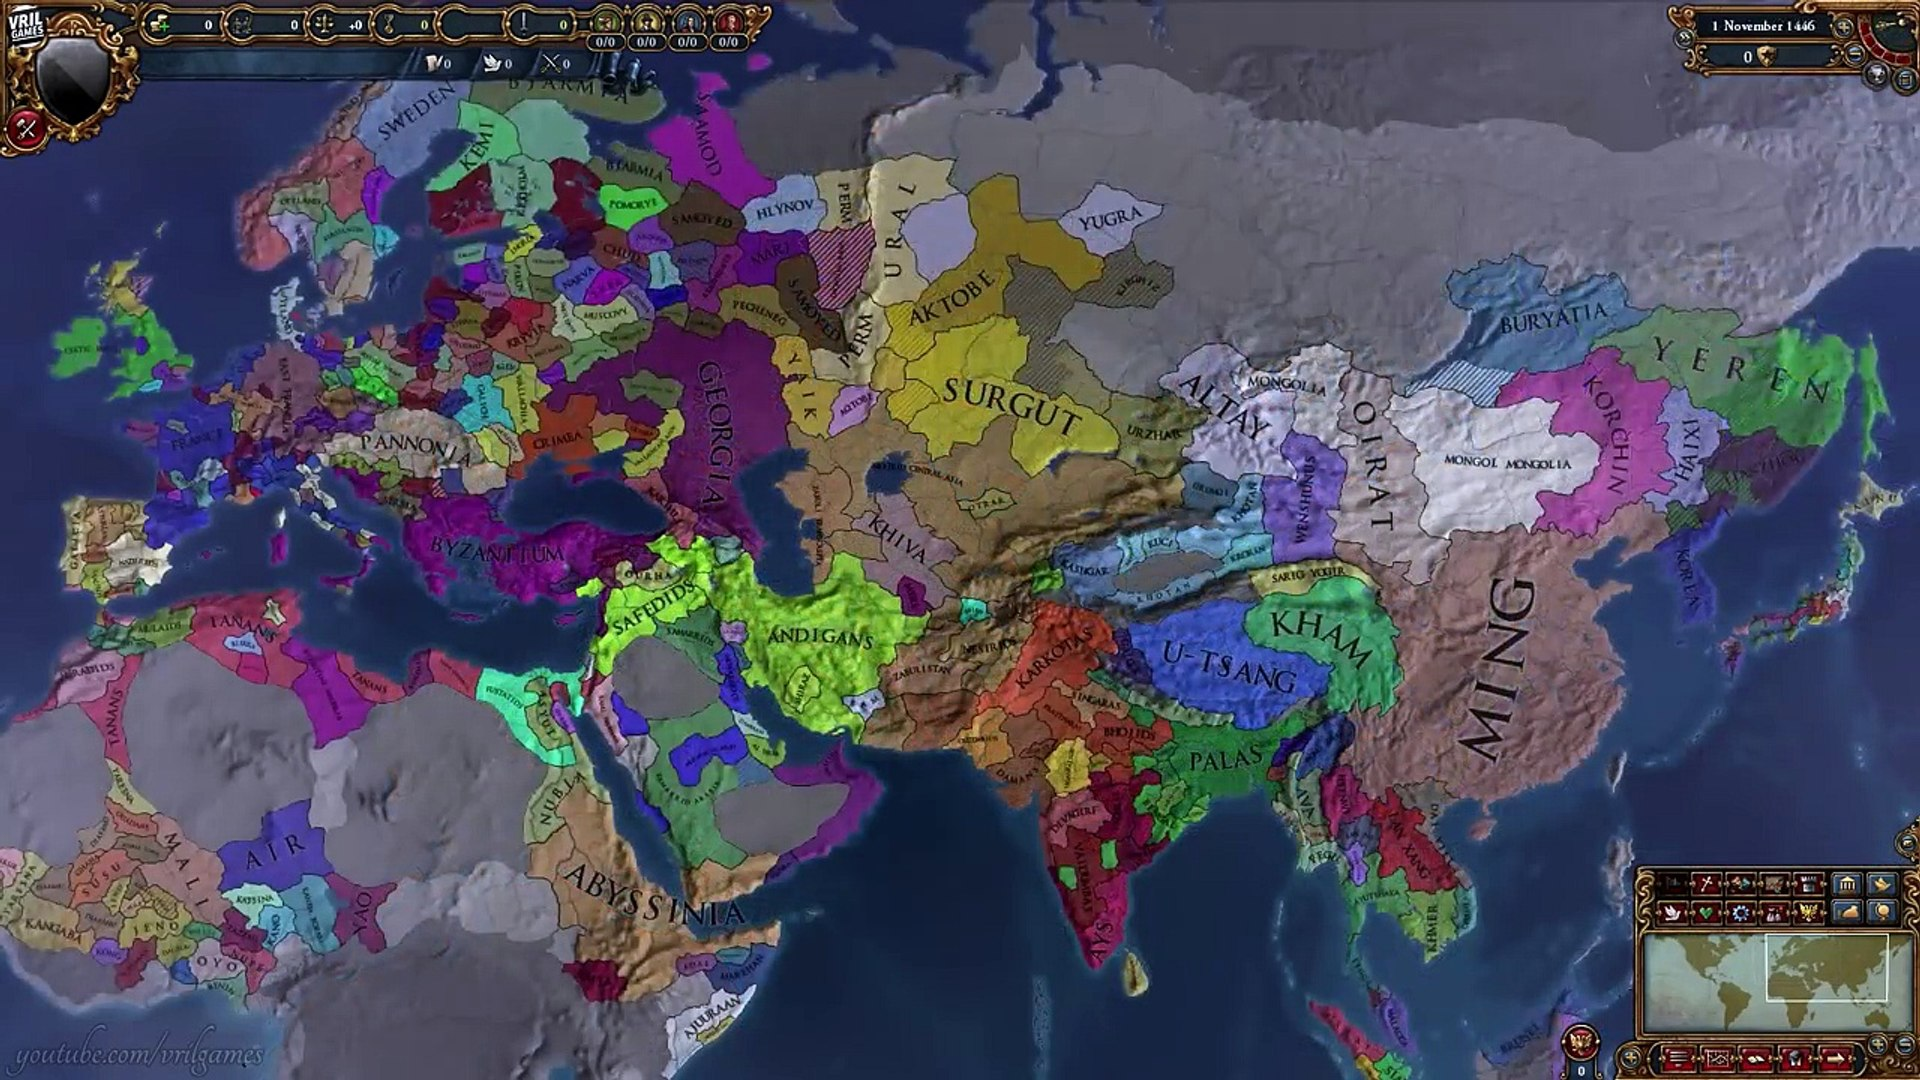 Mega Campaign | CK2 to EU4 to V2 to HoI3 | 769 AD to 1948 AD Timelapse